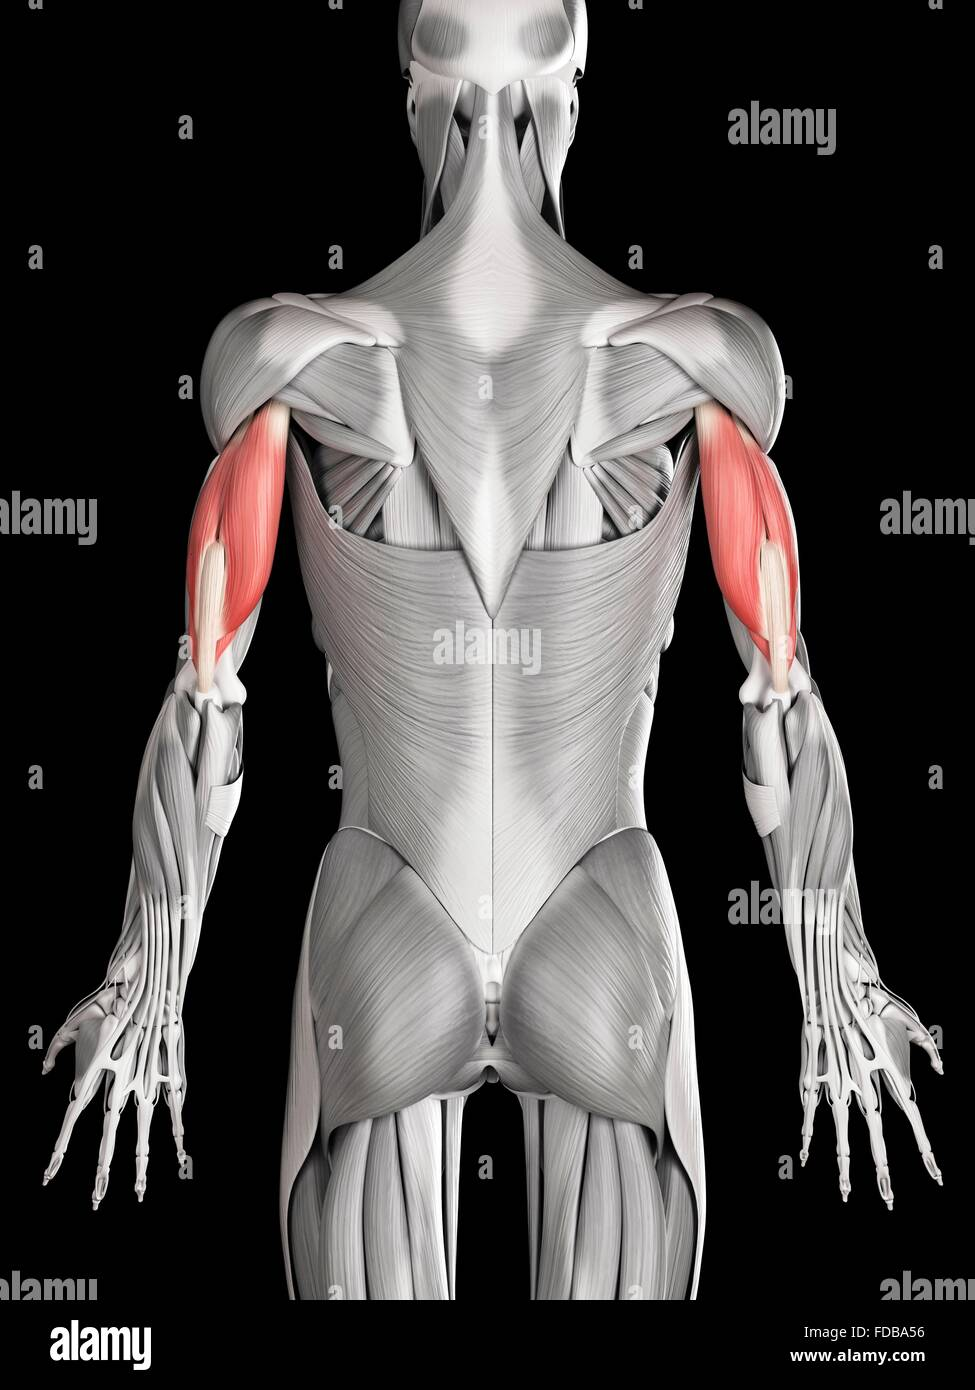 Human Arm Muscles Triceps Illustration Stock Photo 94291826 Alamy